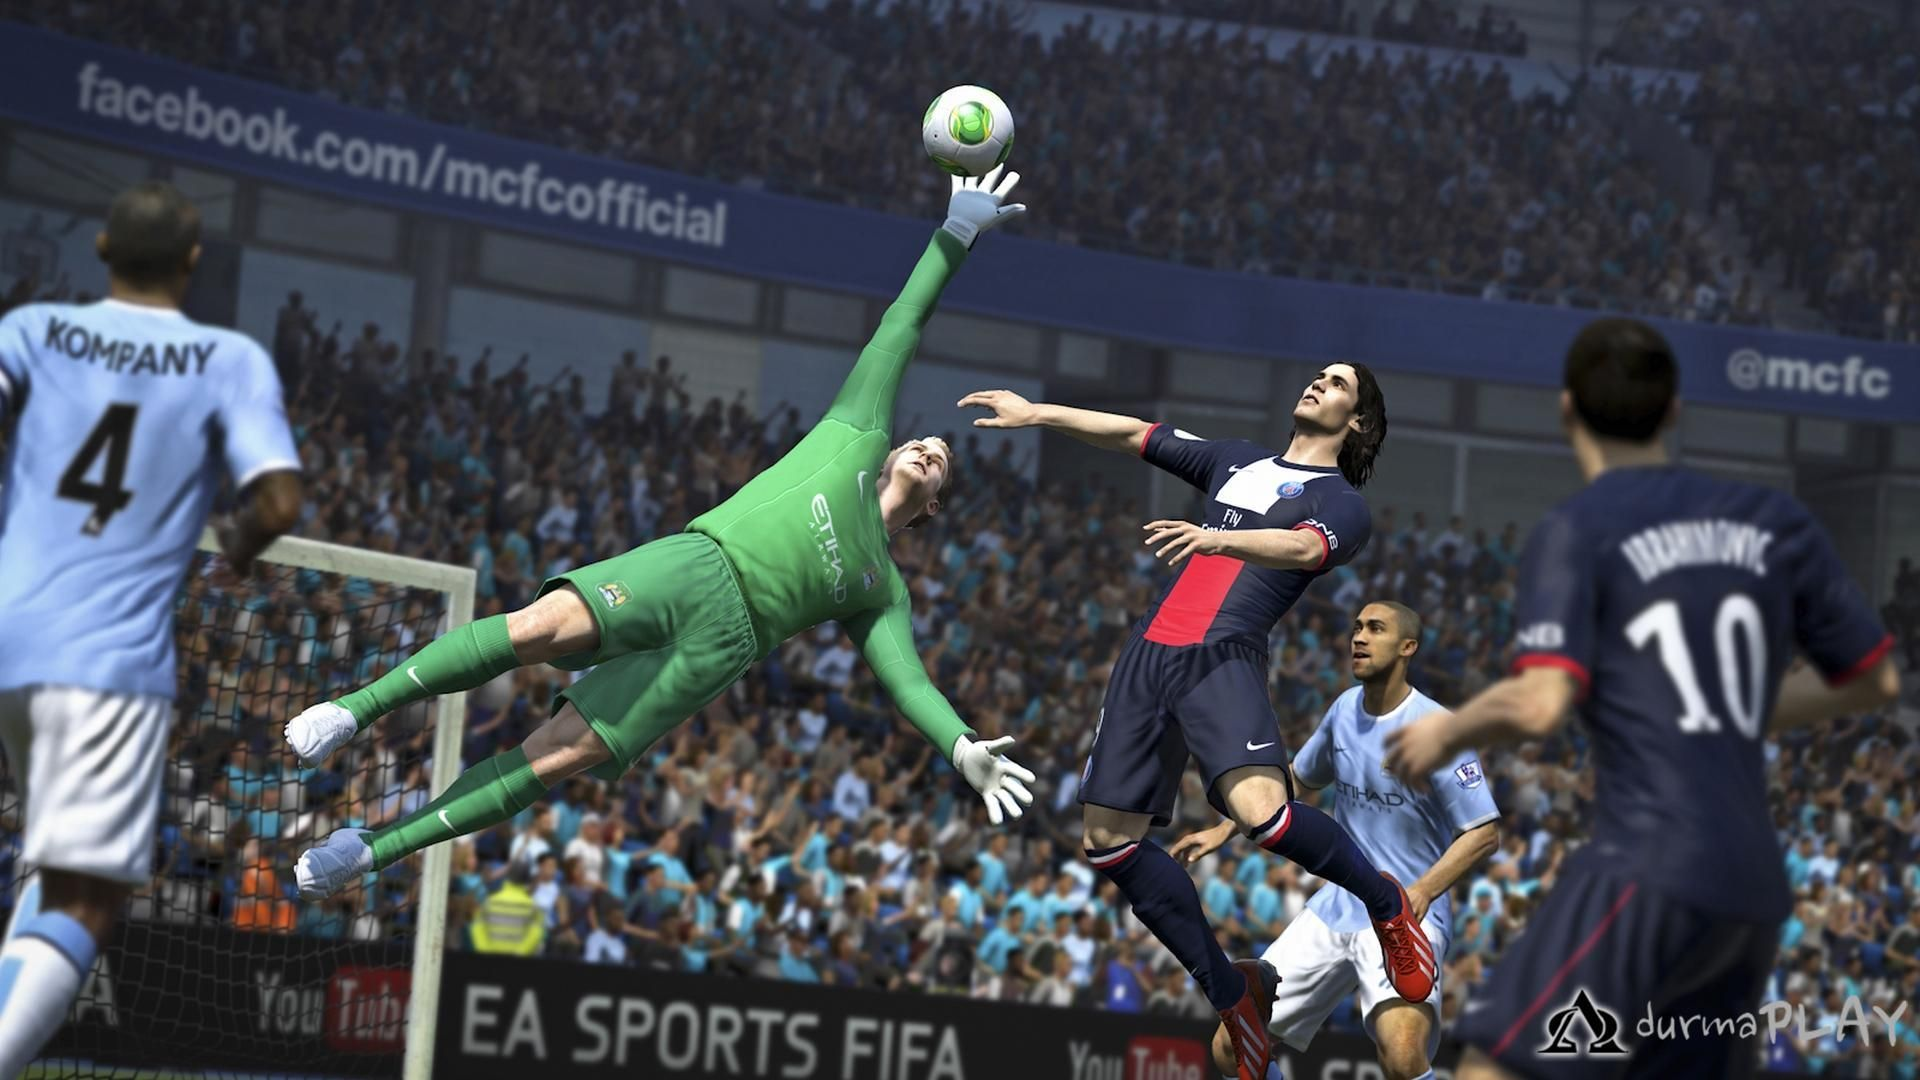 Fifa 17 fifa and recipes part three of the fifa 14 ultimate team earn more coins guide voltagebd Image collections